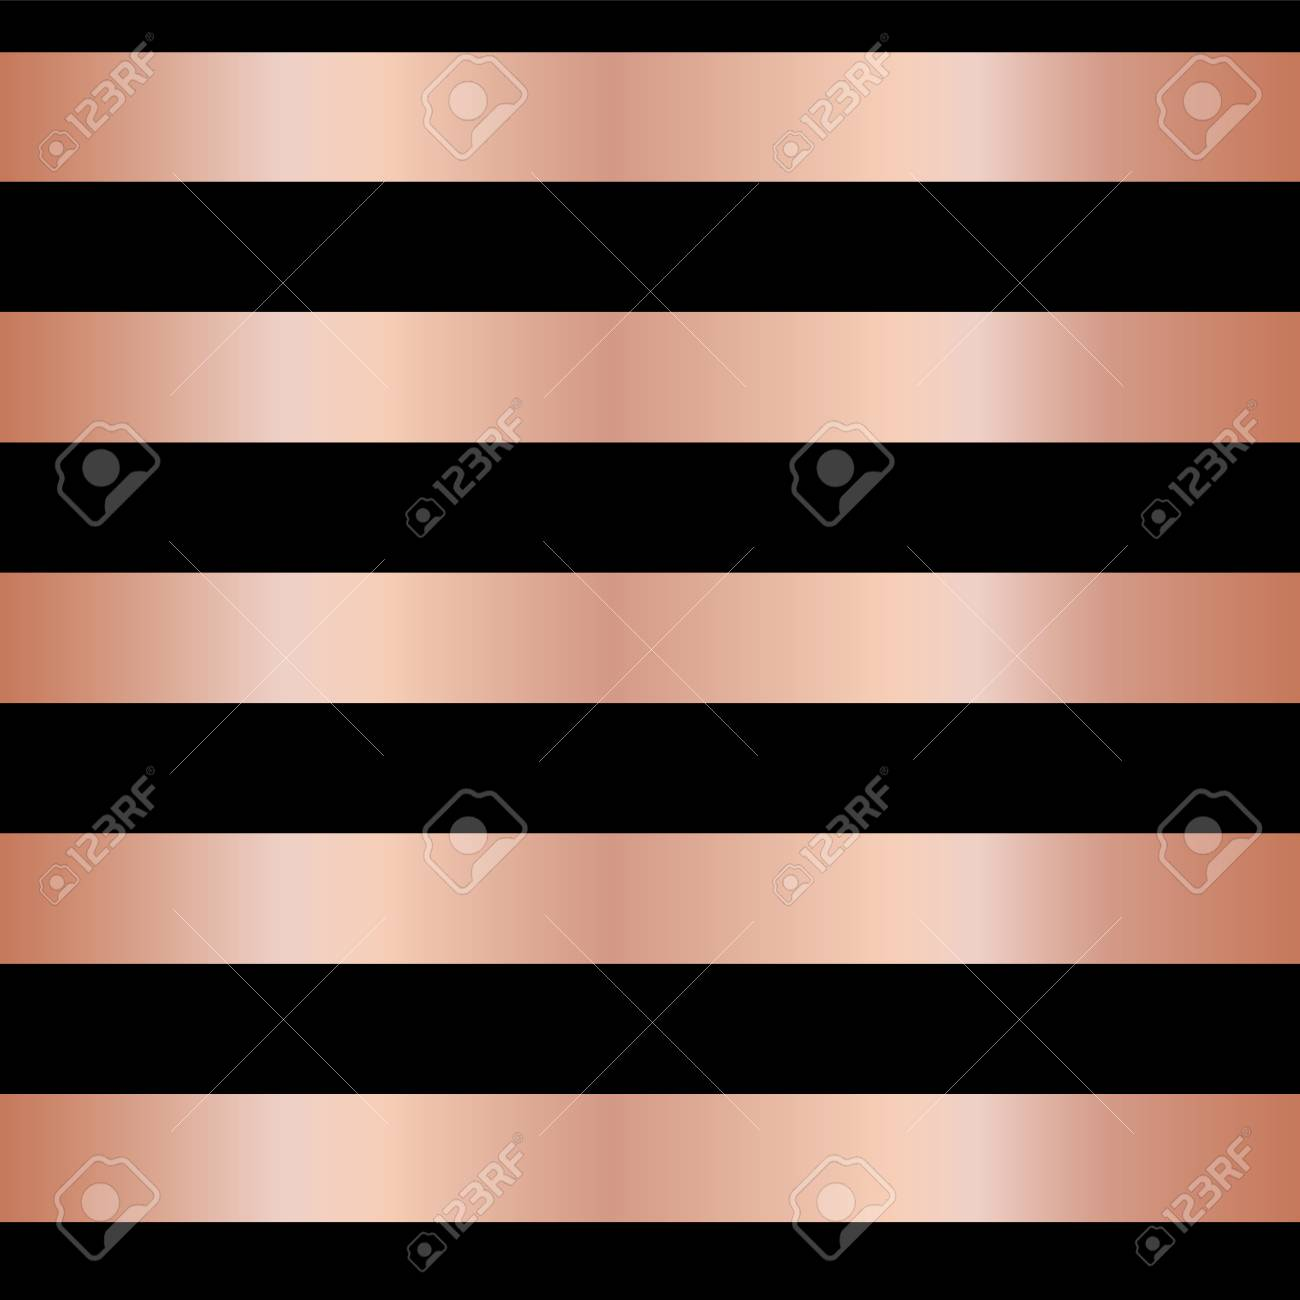 banque dimages copper rose gold foil stripes on black seamless vector pattern background horizontal metallic shiny lines christmas new year